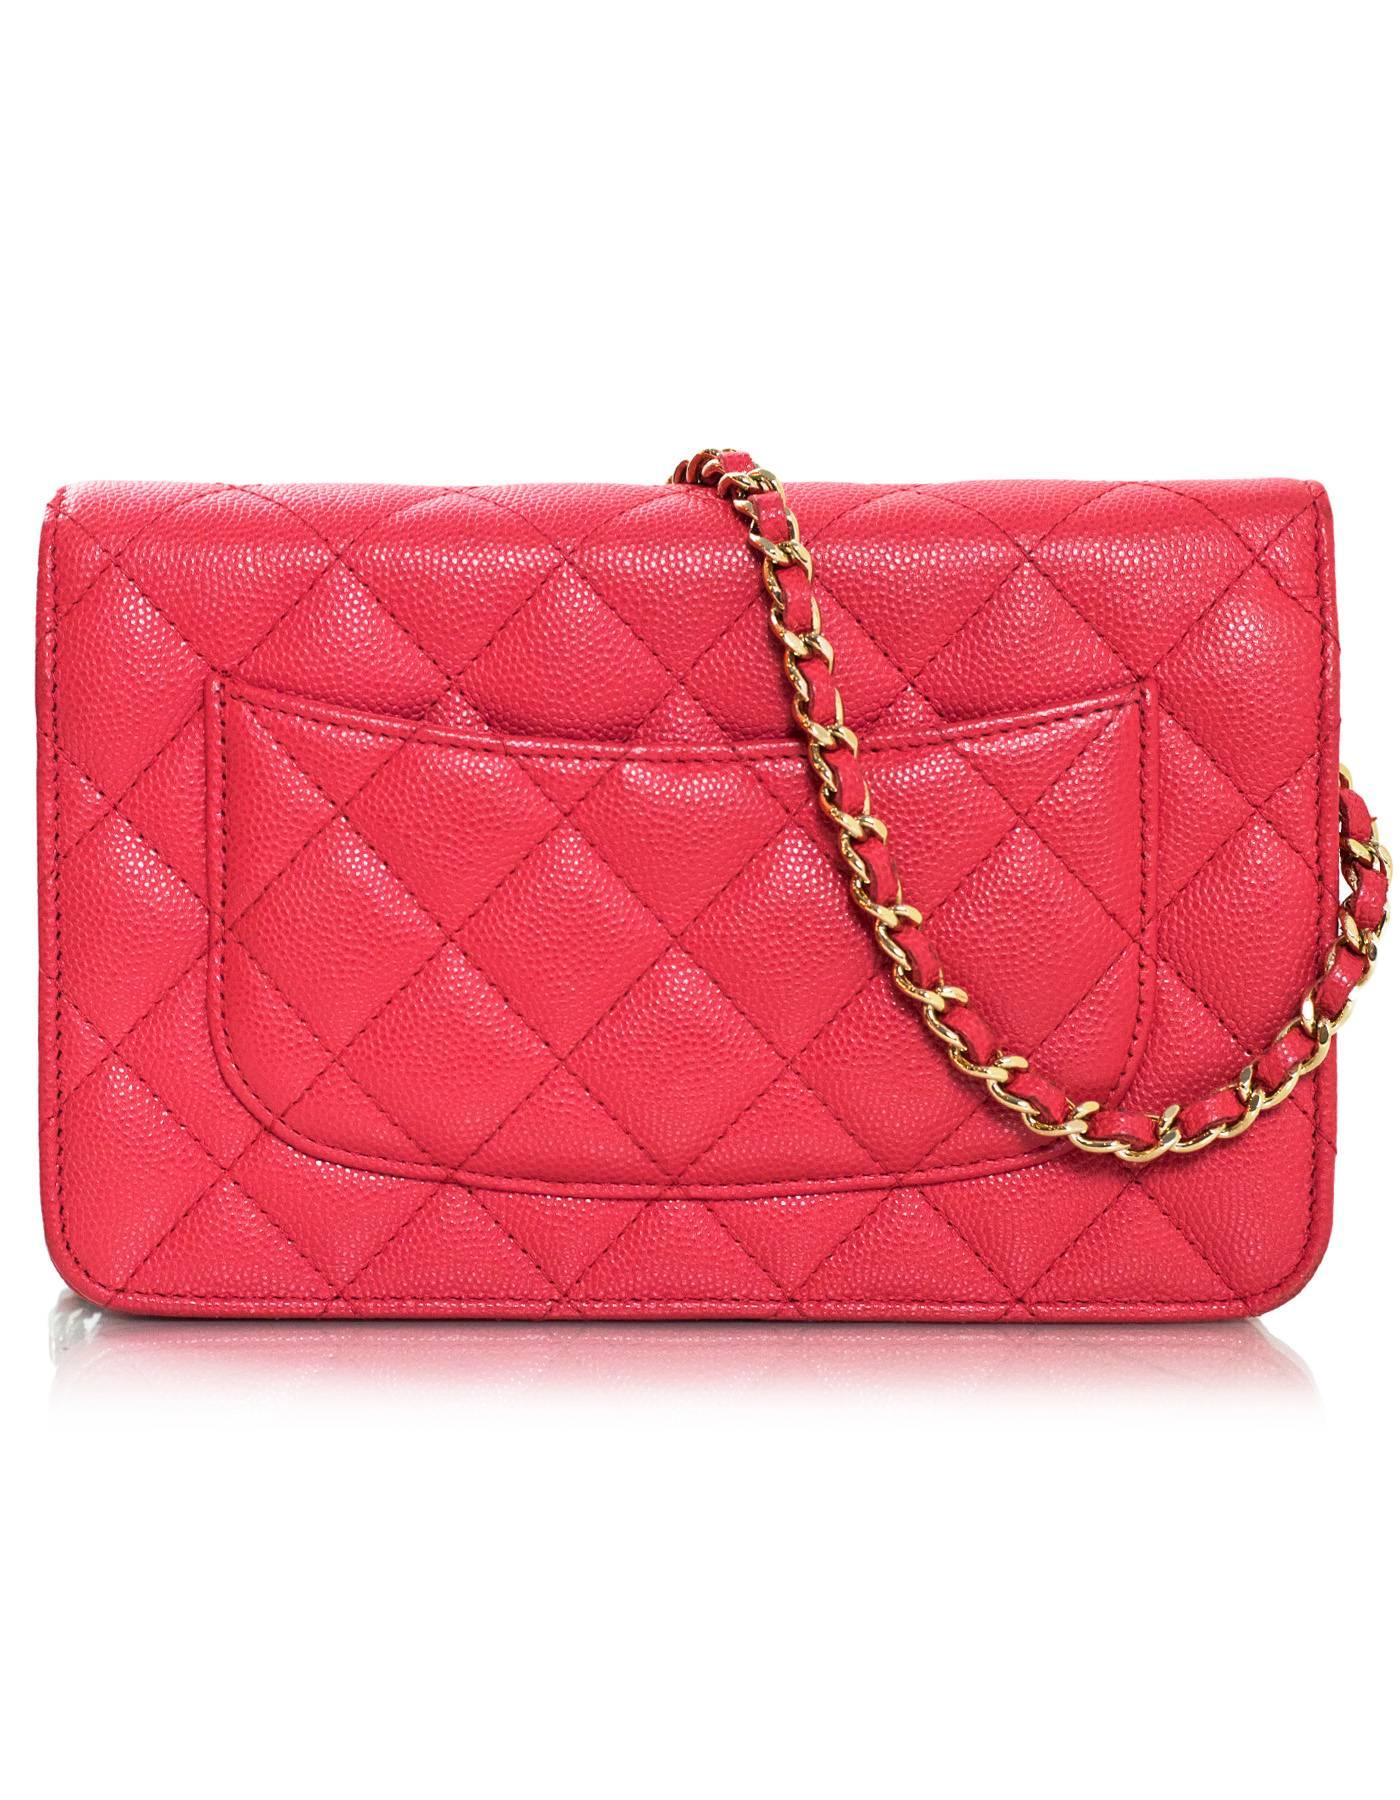 Chanel 2017 Pink Caviar WOC Wallet on a Chain Crossbody Bag w. Box/DB/Receipt For Sale at 1stdibs